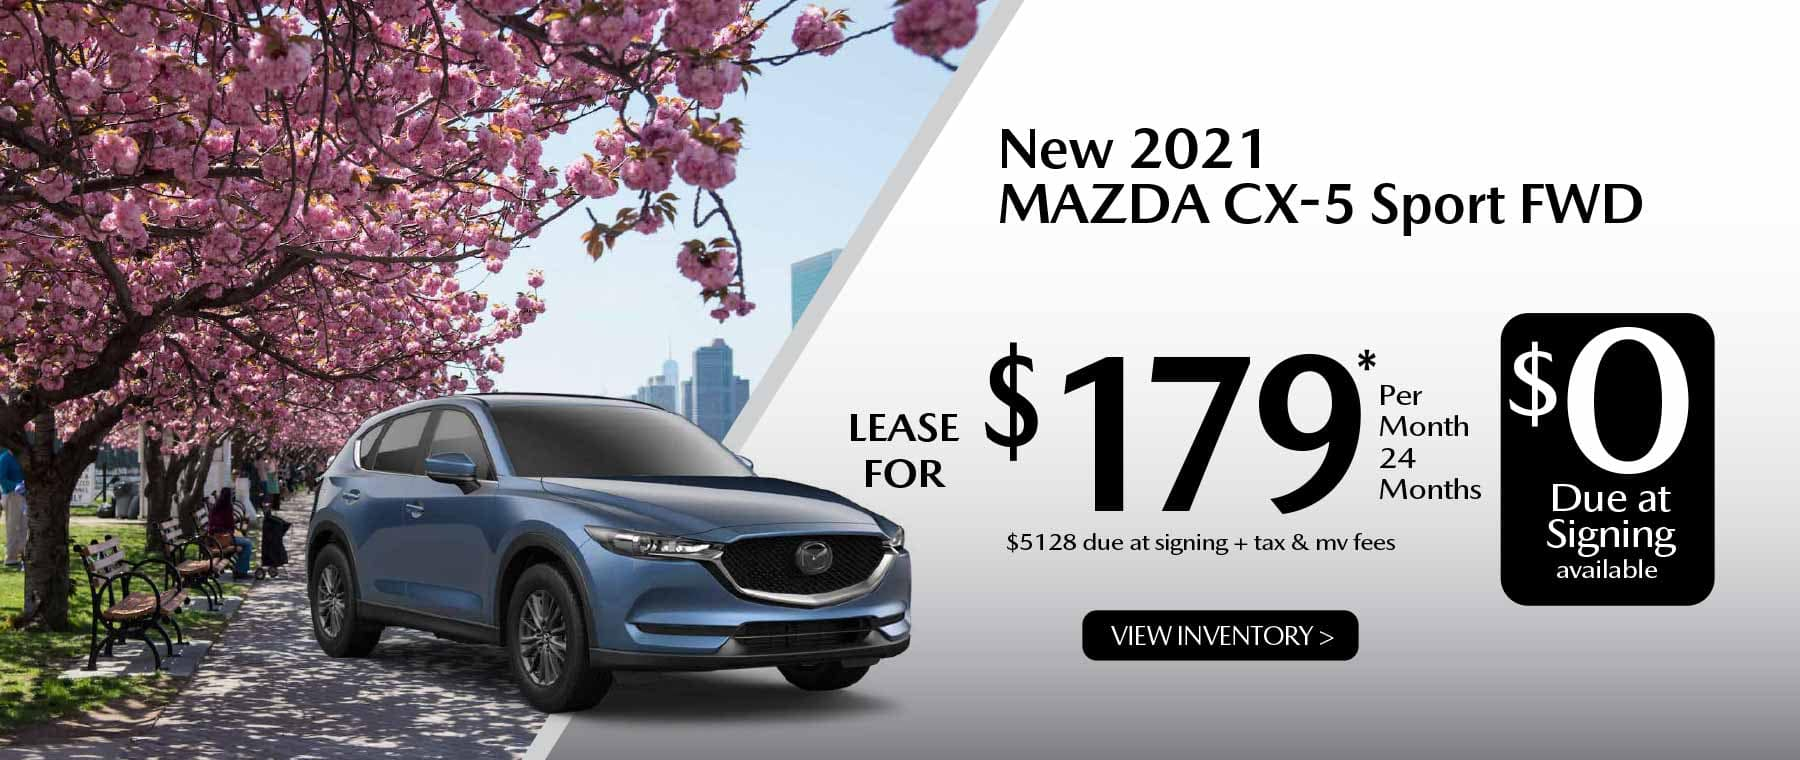 05hi CX-5 New Lease Special Offer Garden City Mazda NY